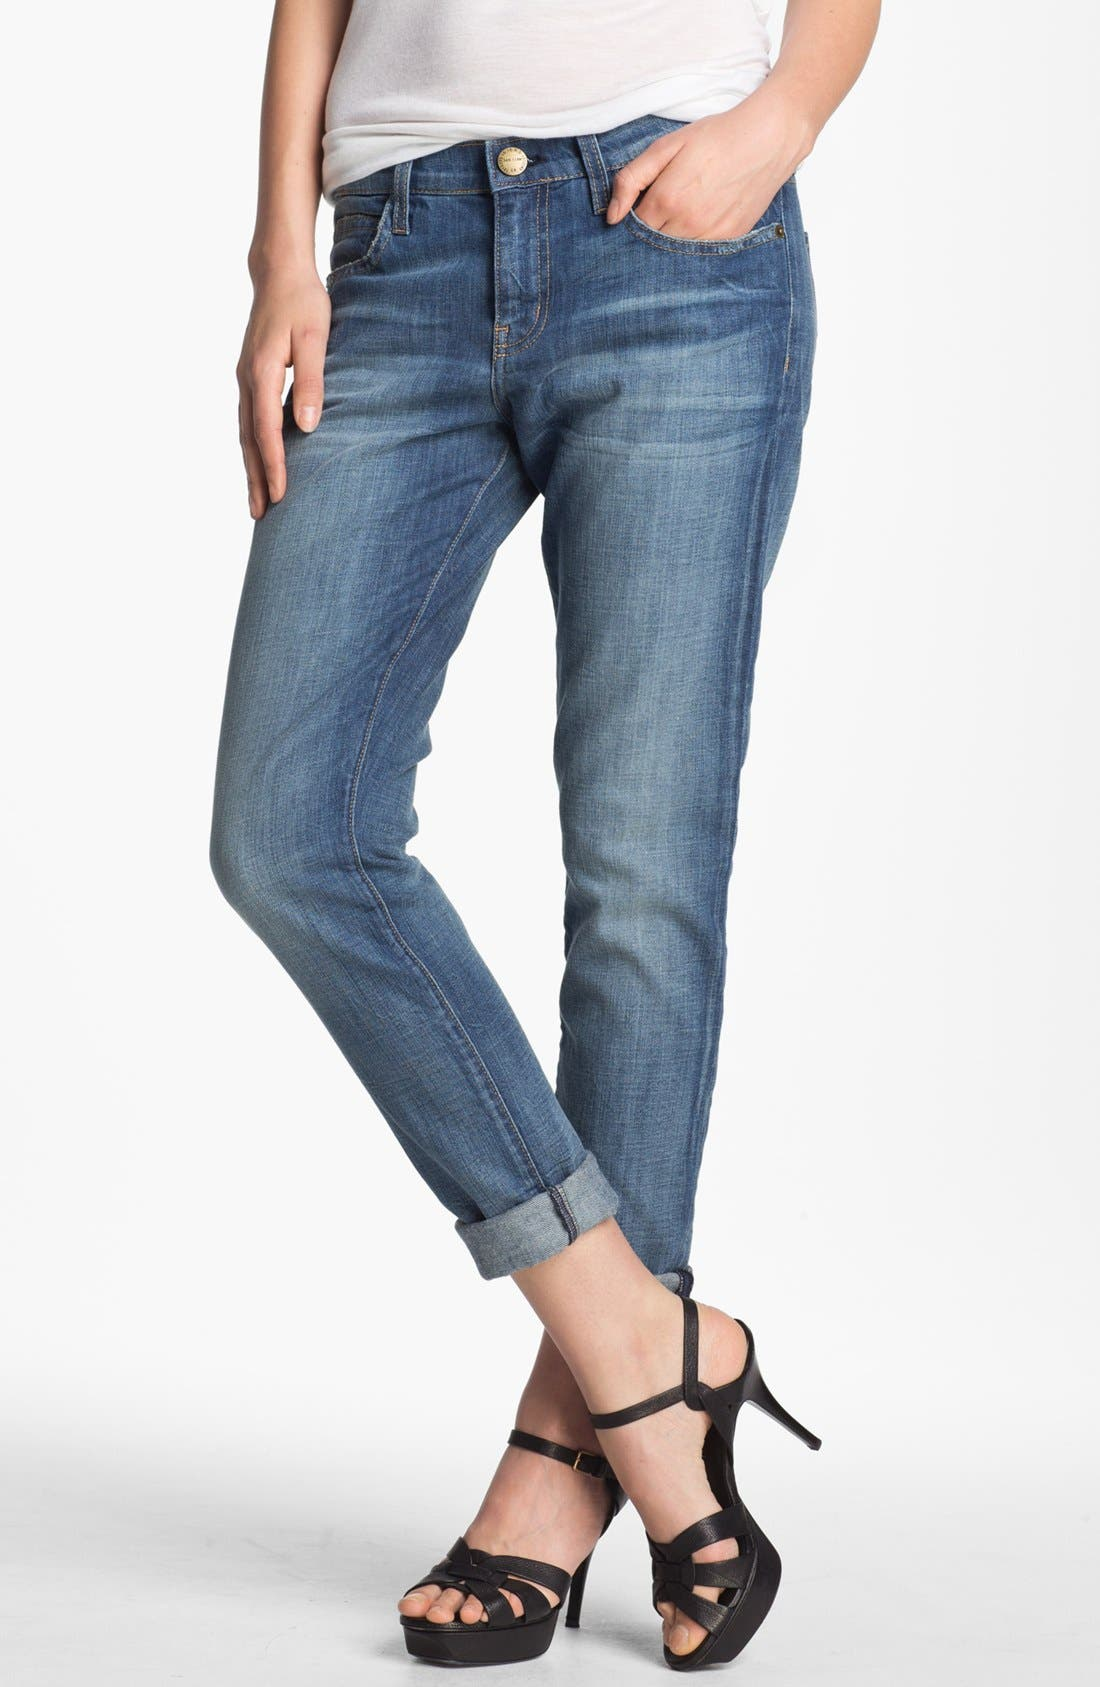 Alternate Image 1 Selected - Current/Elliott 'The Roller' Jeans (Treasure)